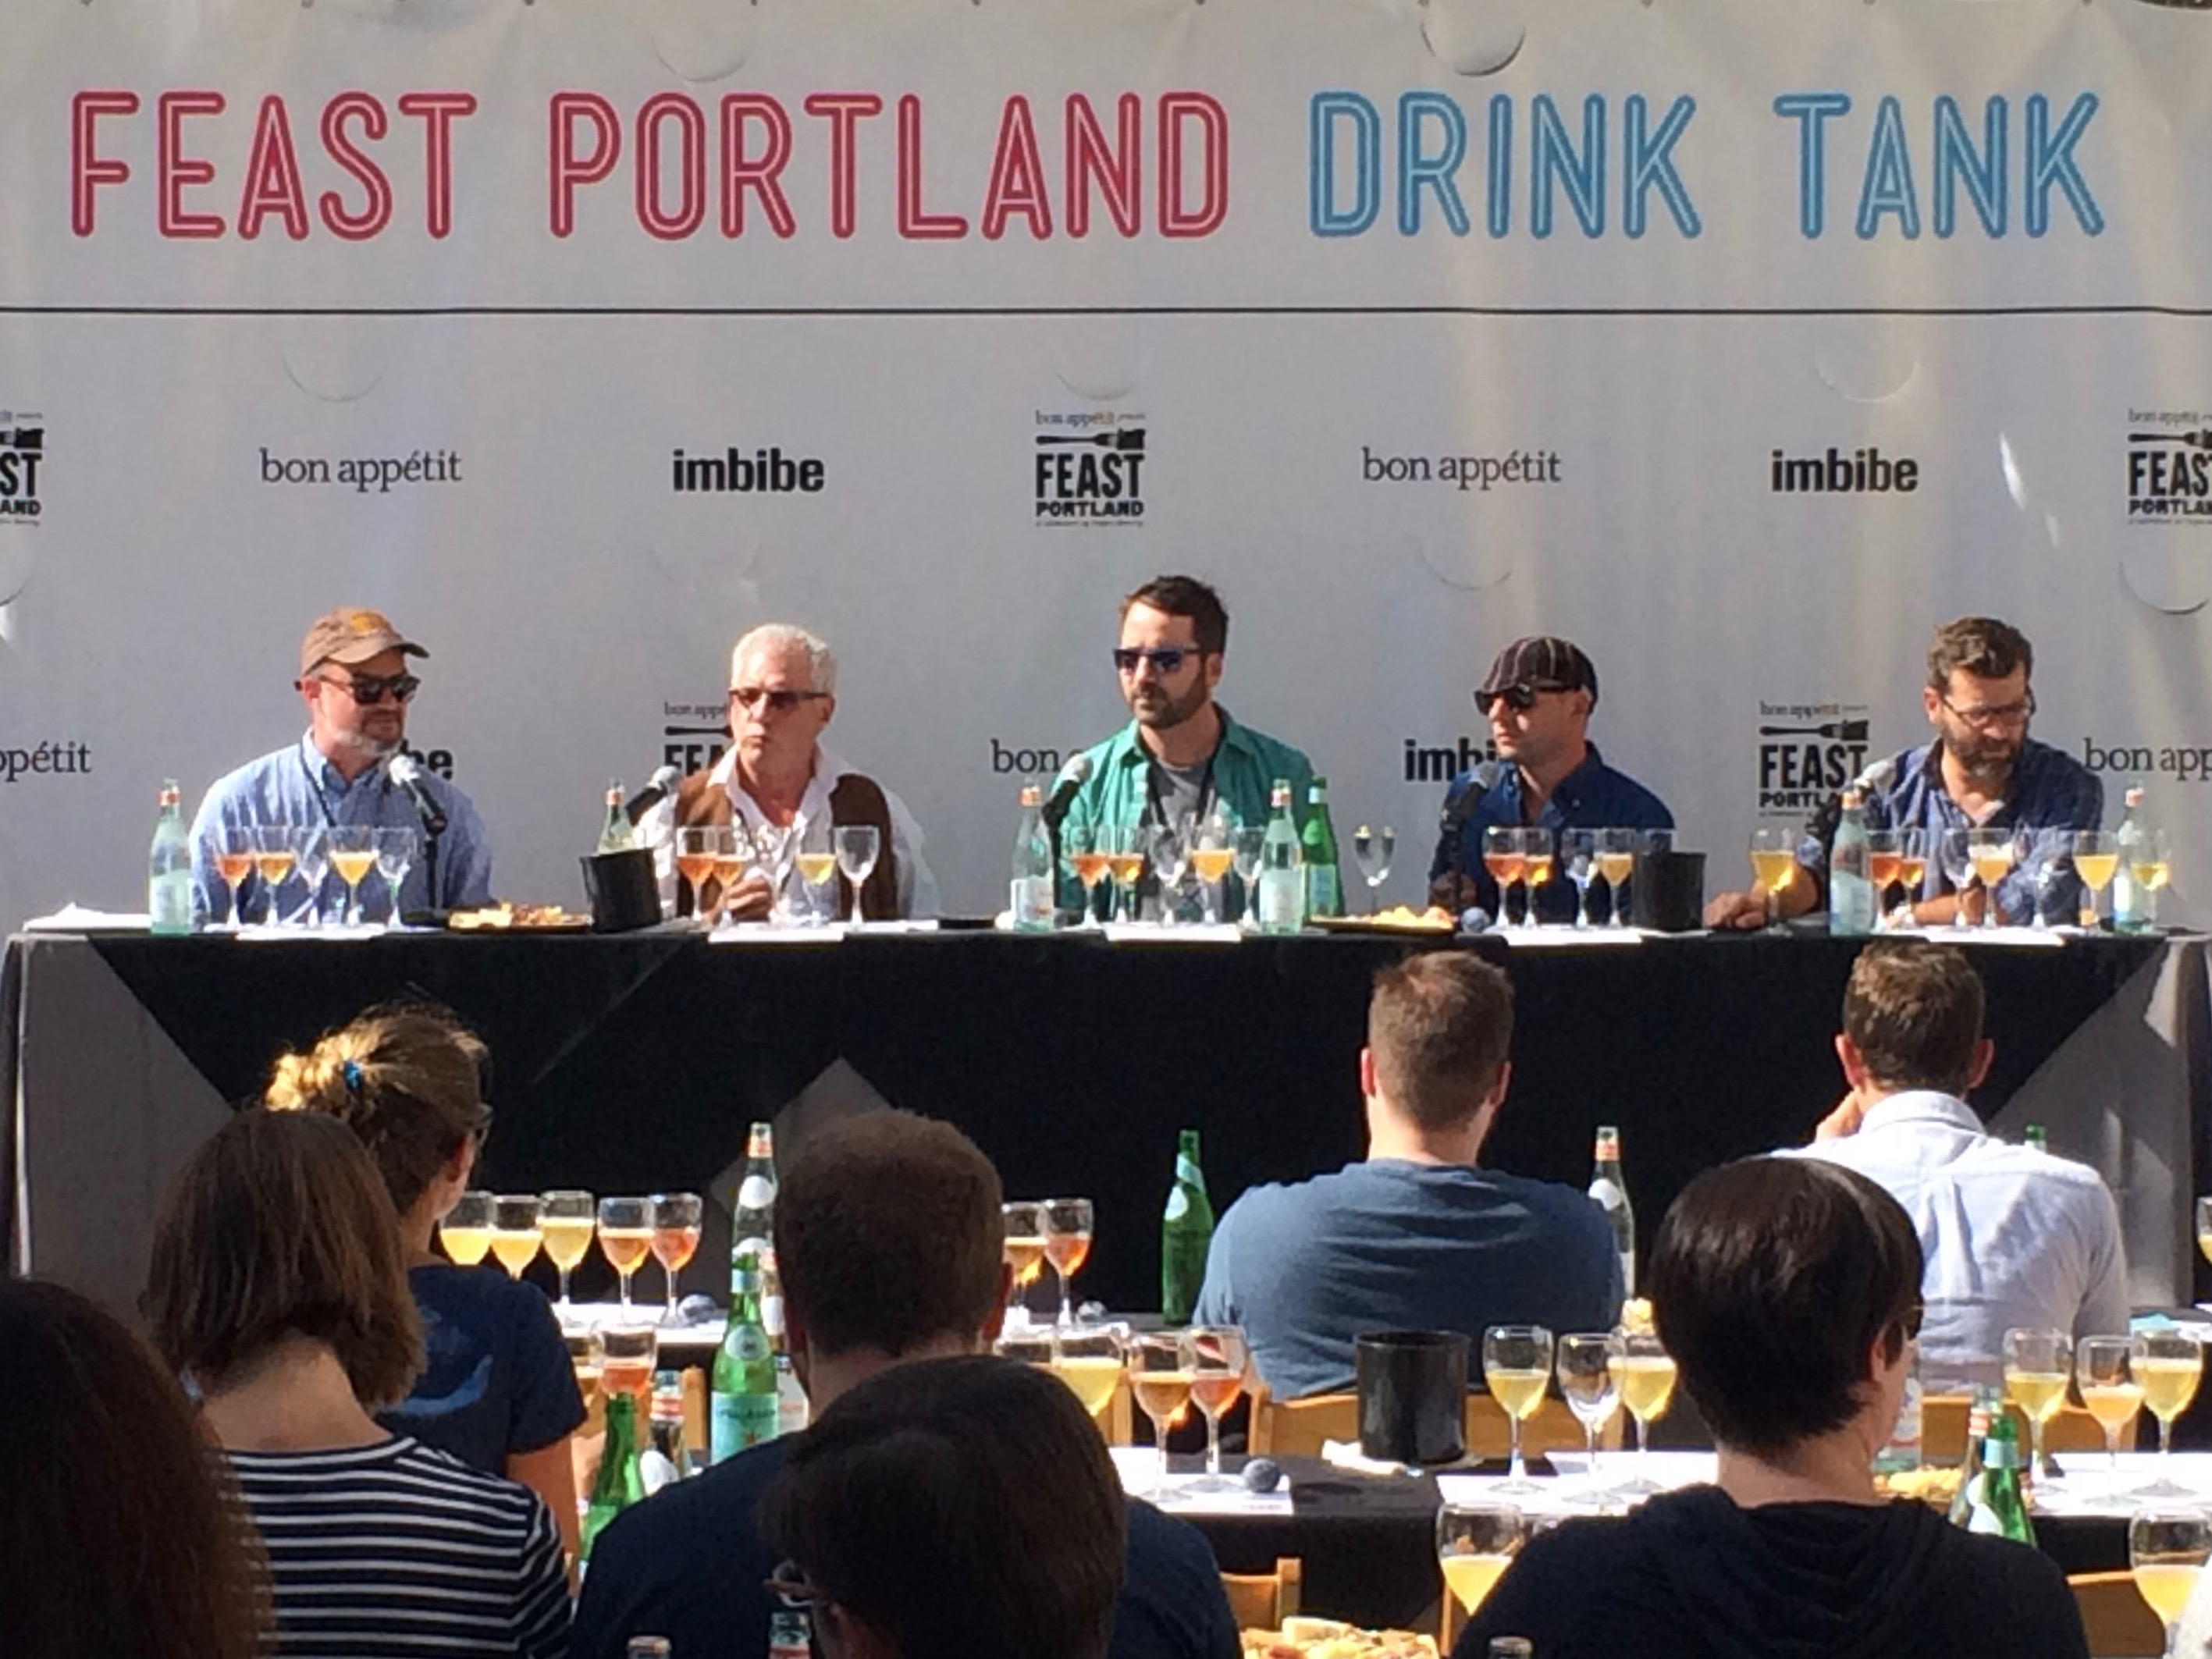 Old MacDonald Had a Brewery panel at Feast Portland in 2015. Panelists included Paul Clarke, Dave Logsdon, Christian DeBenedetti, Josh Bernstein, and David Lynch (left to right). (photo by D.J. Paul)